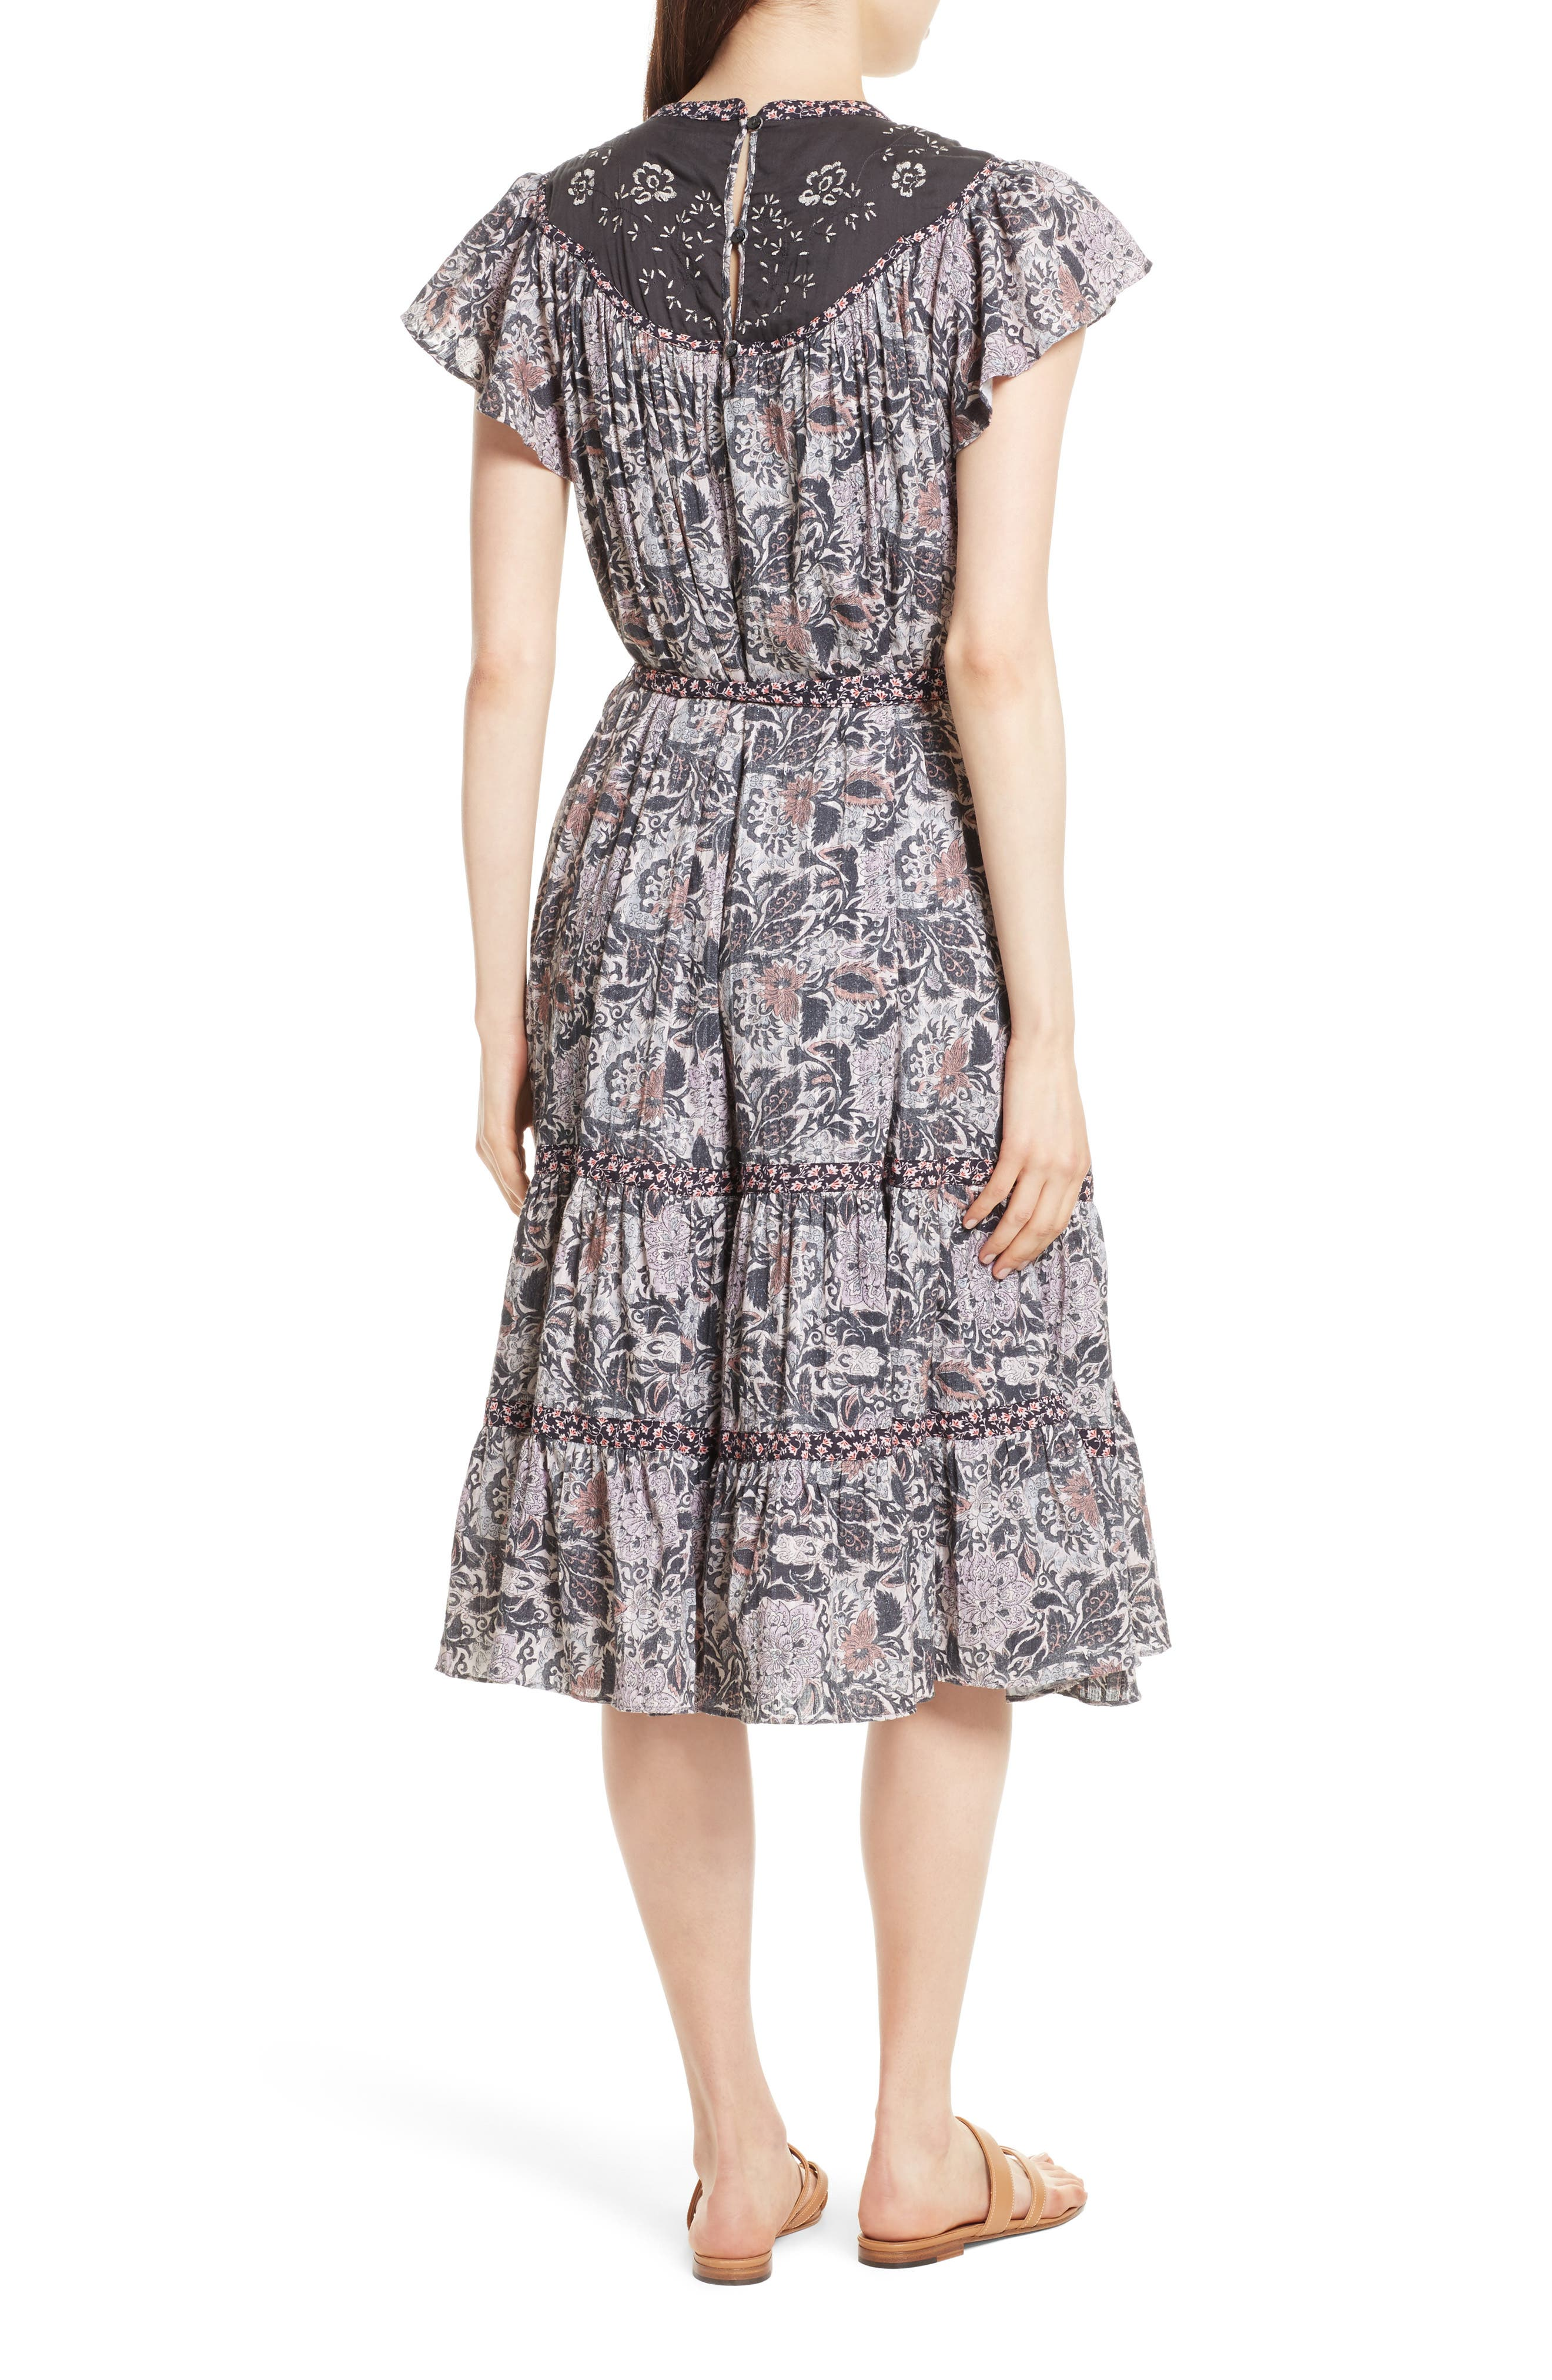 Indochine Embroidered Floral Dress,                             Alternate thumbnail 2, color,                             017